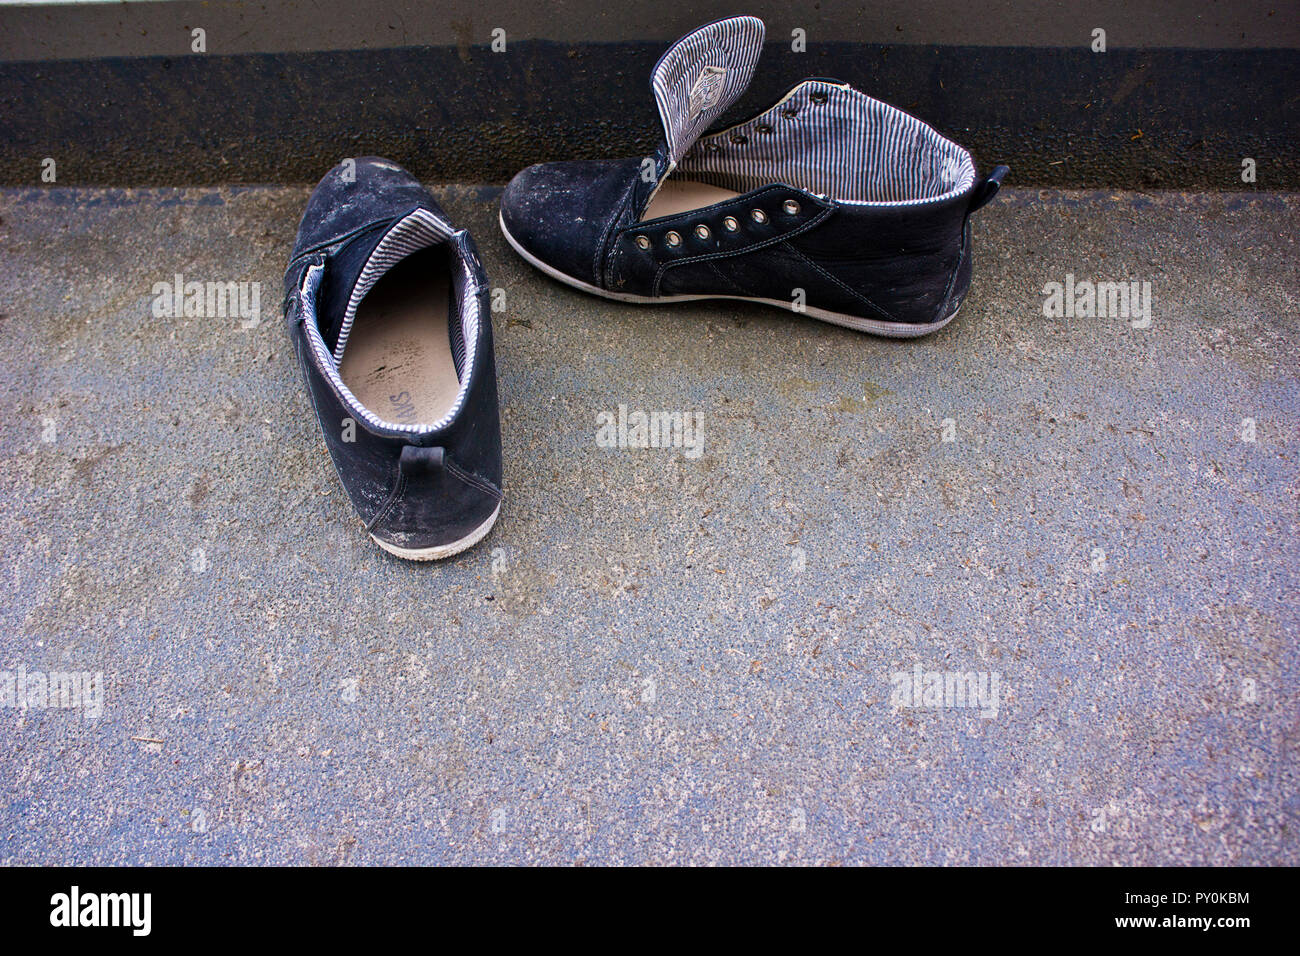 blue sneakers shoes without laces abandoned in the street - Stock Image